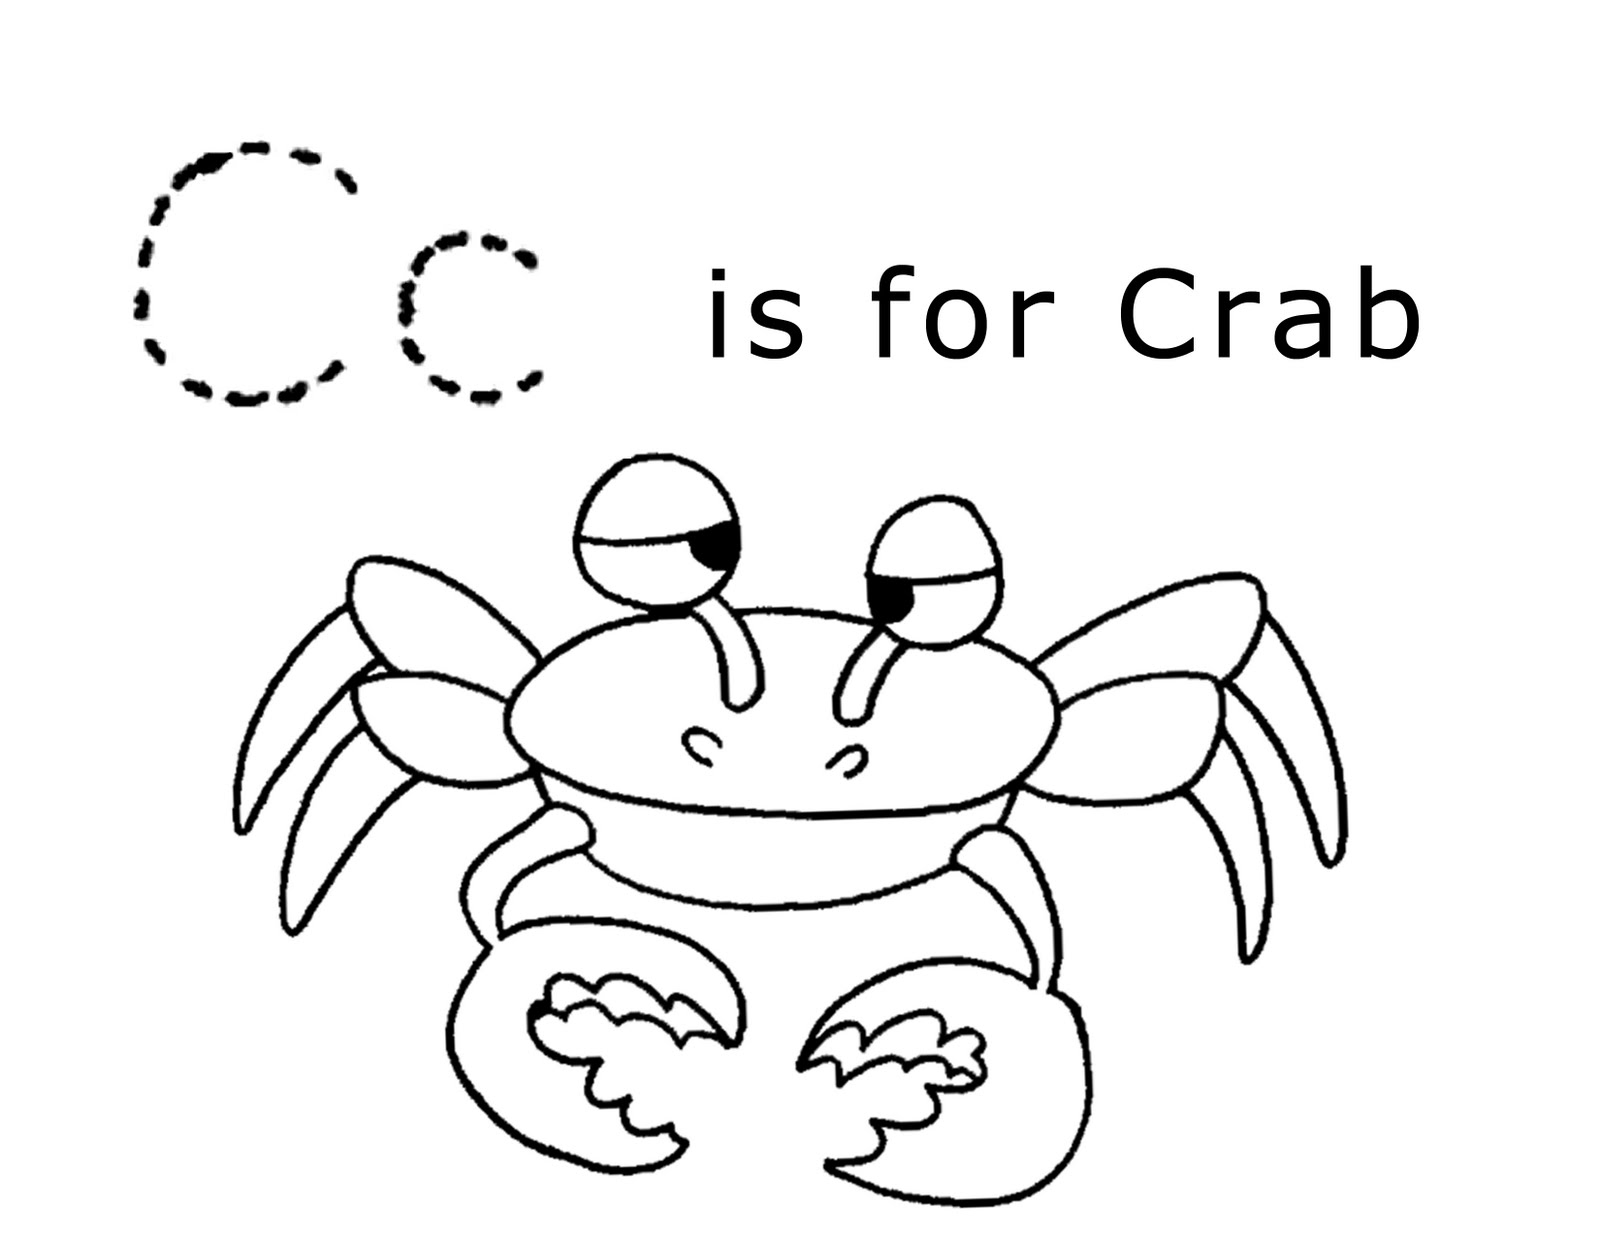 letter c coloring pages for preschoolers b for ball coloring pages alphabet coloring pages for letter pages preschoolers c coloring